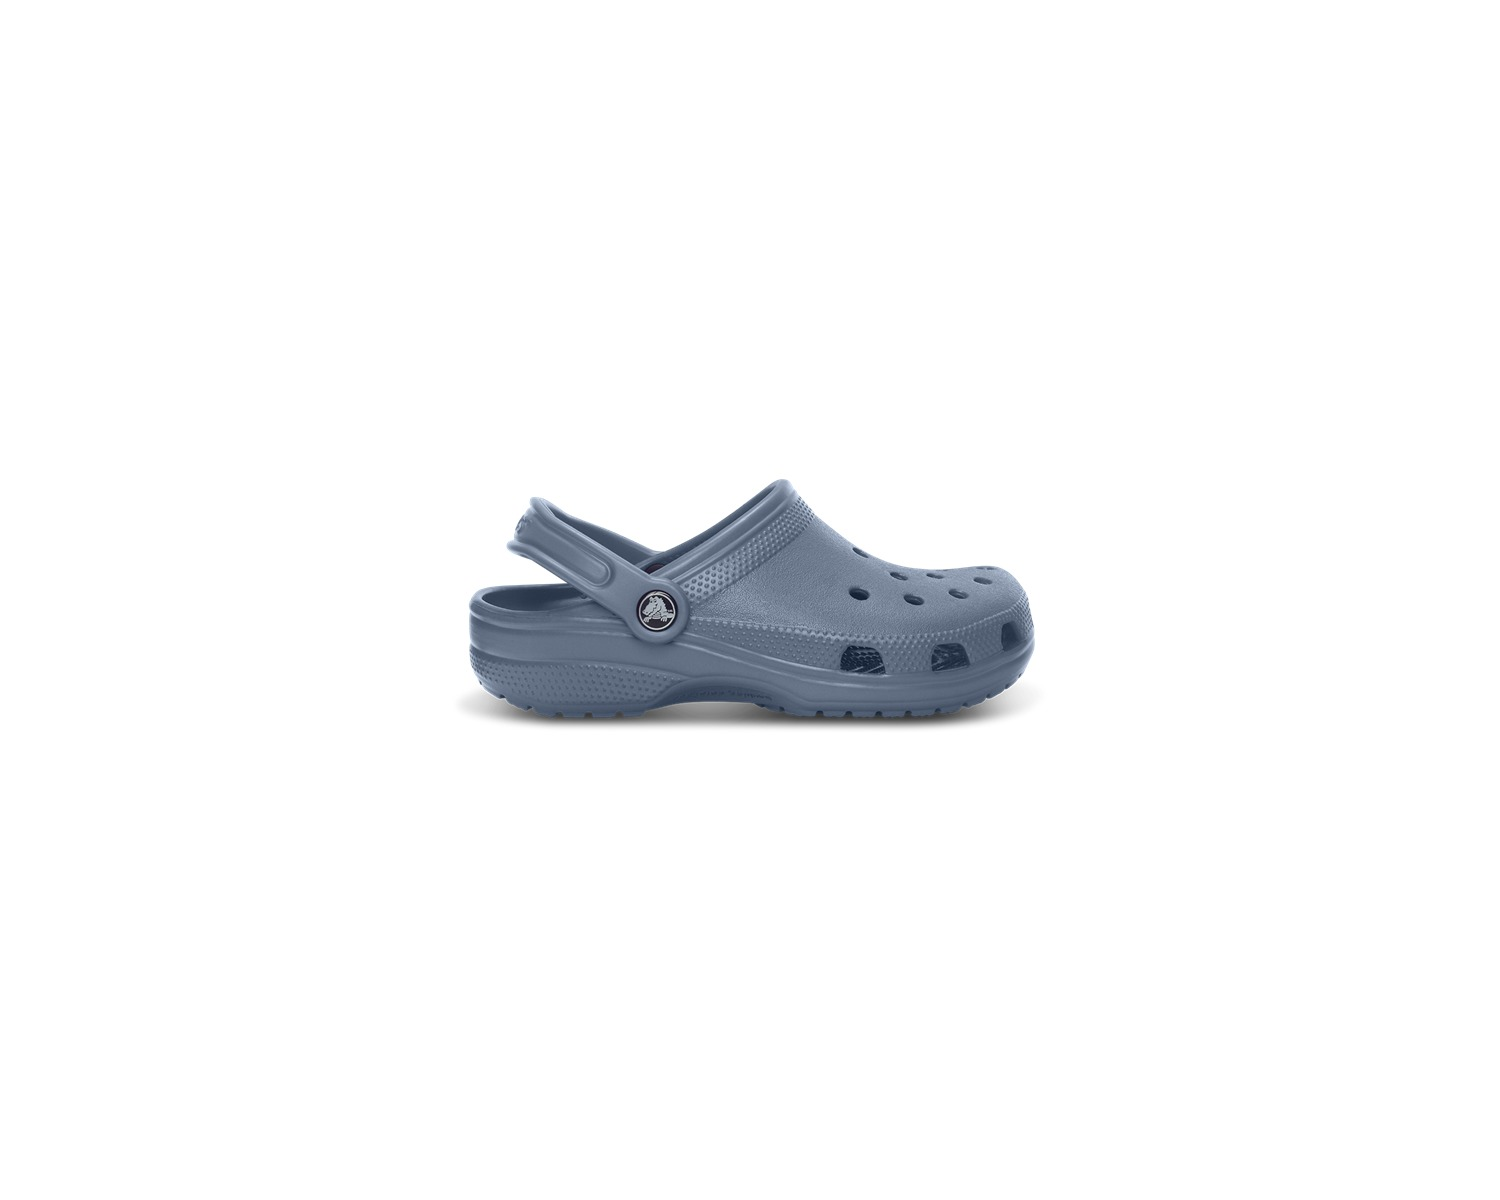 Gris Bigship Crocs Accastillage Chaussures Classic 4344 5Pfwg4fq